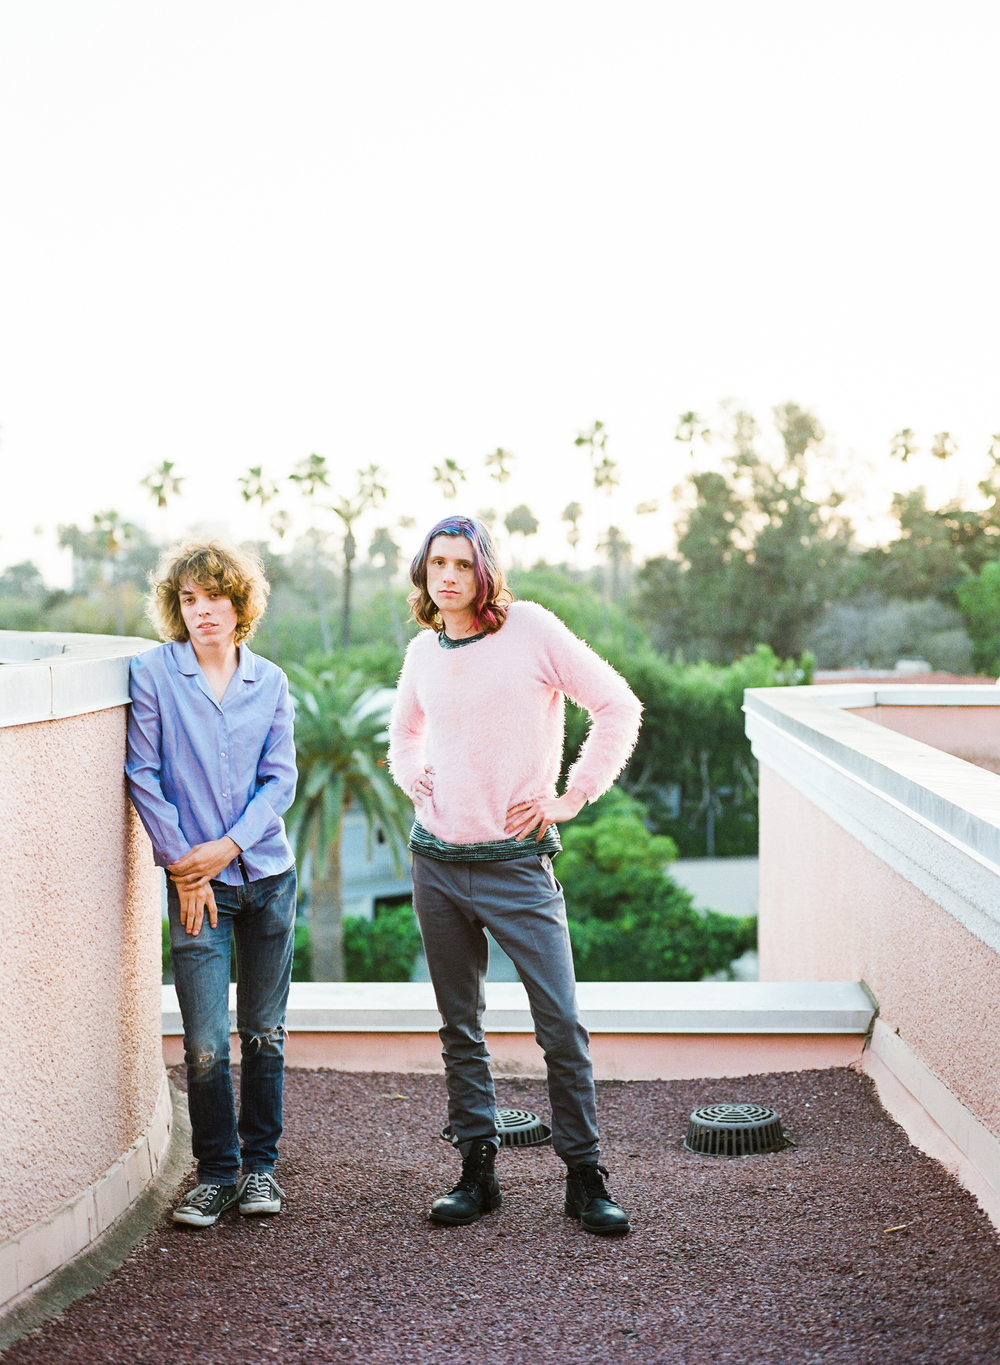 Jonathan Rado (left) and Sam France of Foxygen. Photo: Cara Robbins.